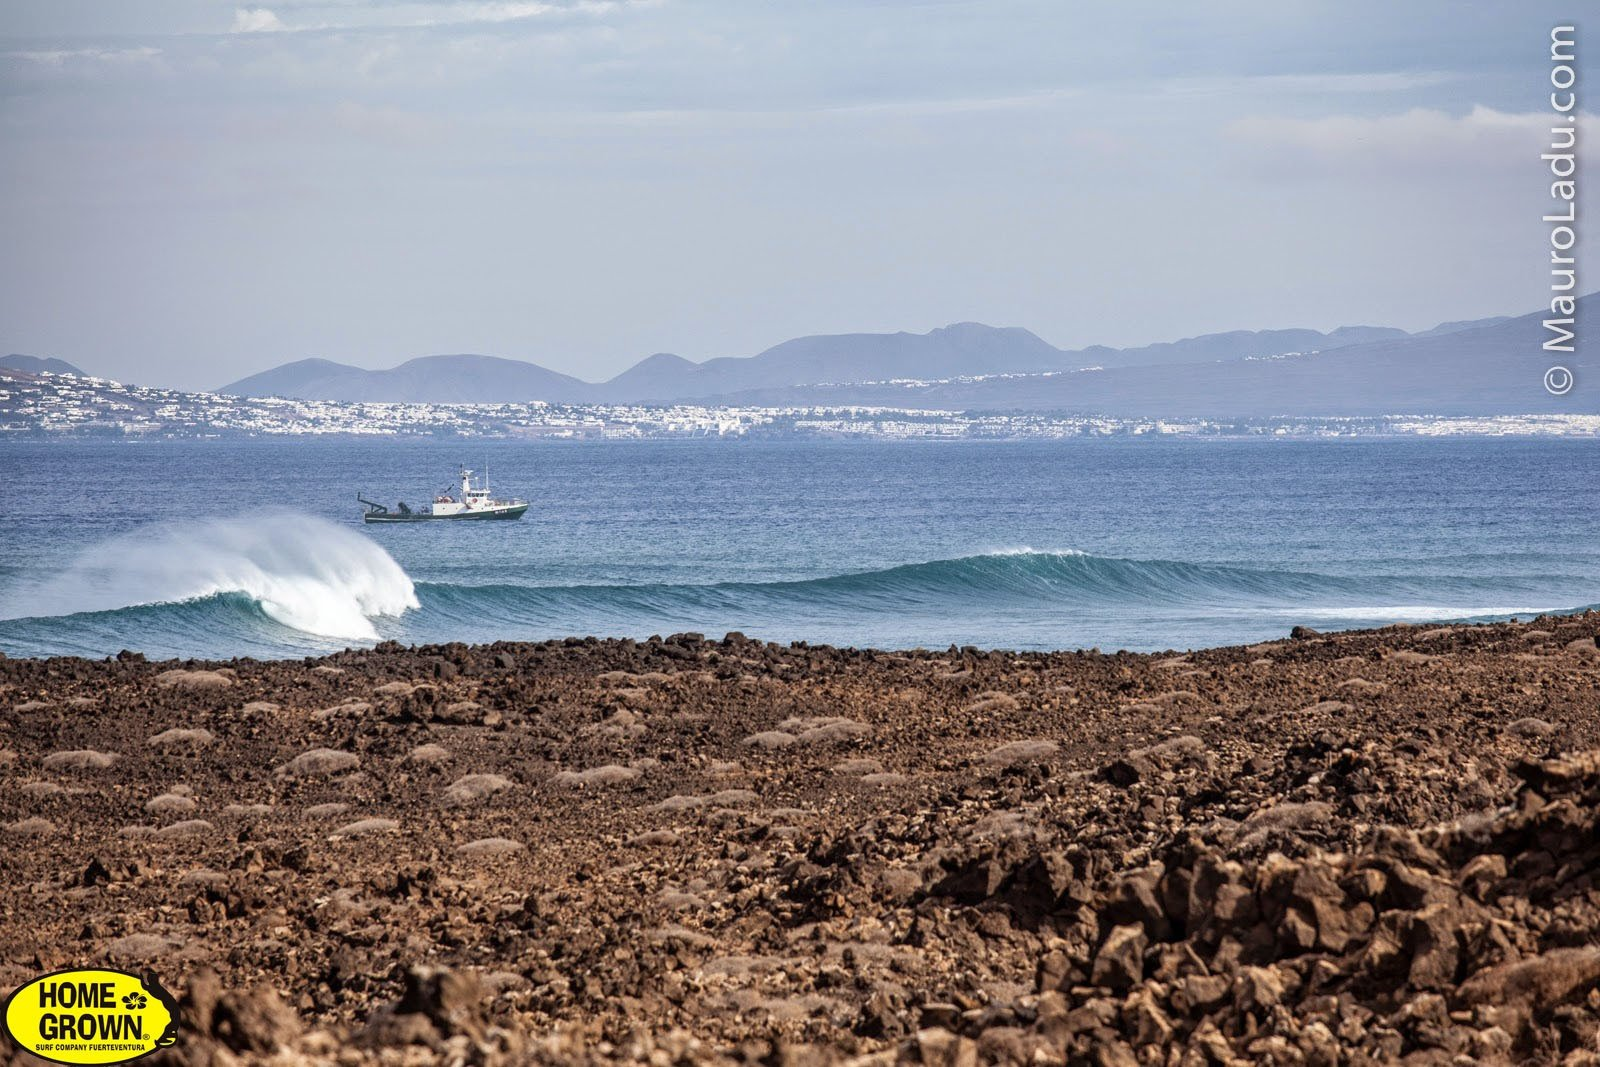 homegrown surfschool fuerteventura's photo of Generoso